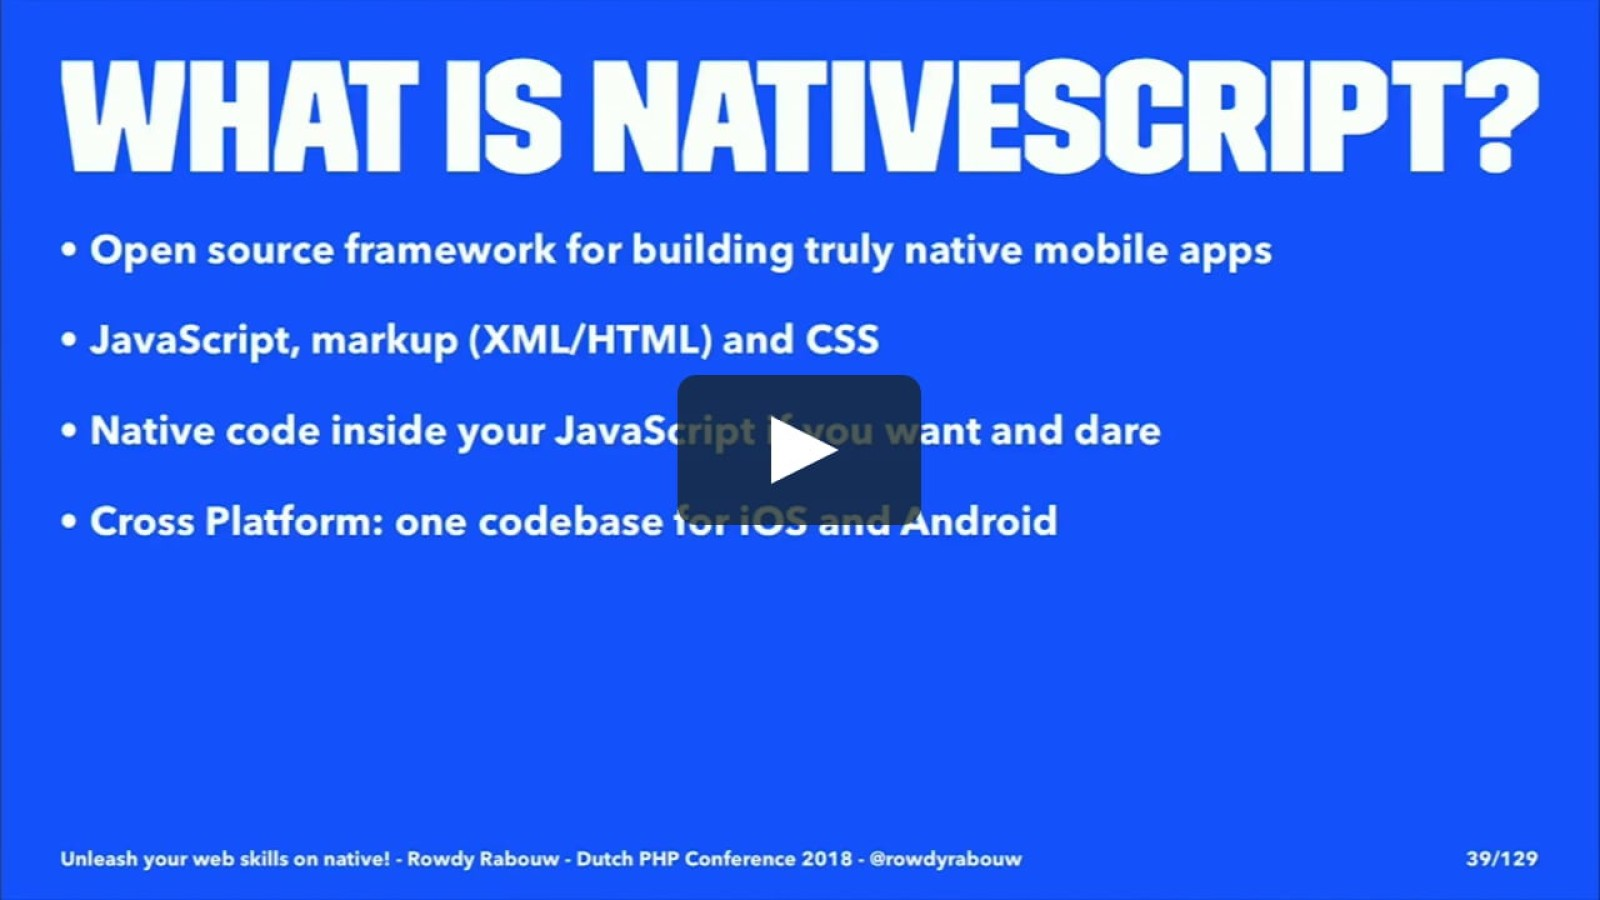 Unleash your web skills on native!